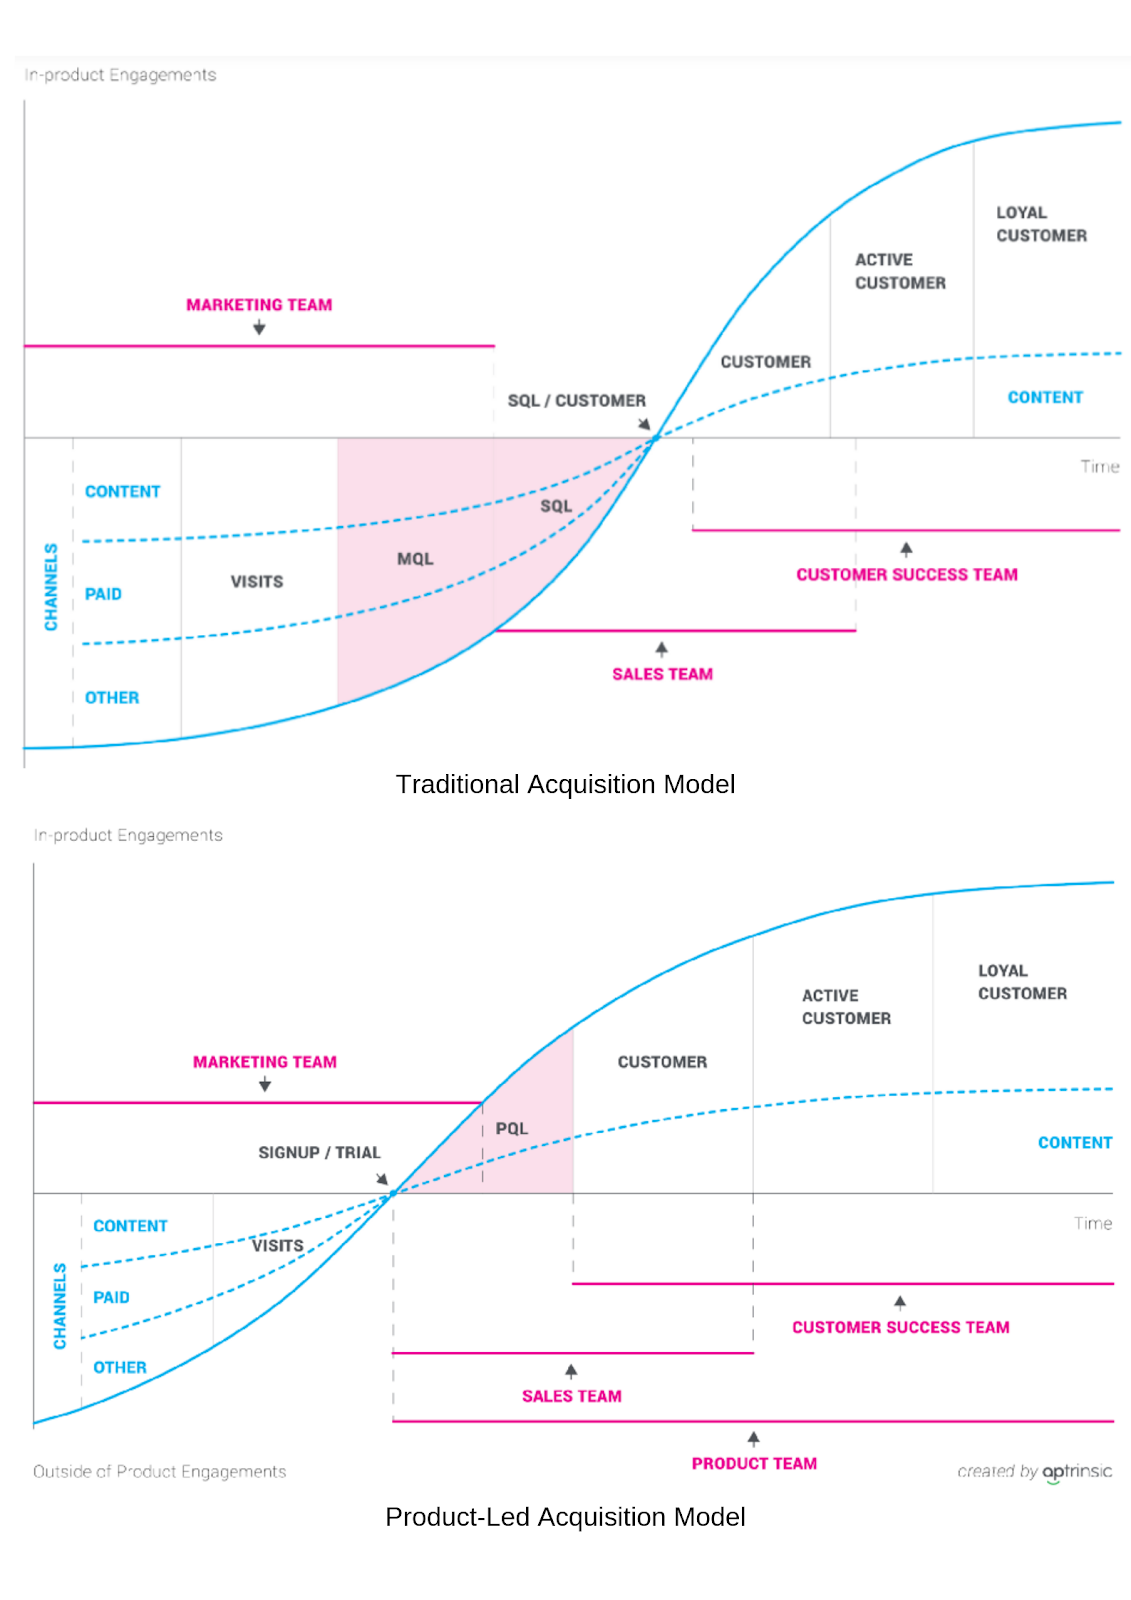 traditional versus product-led acquisition model.